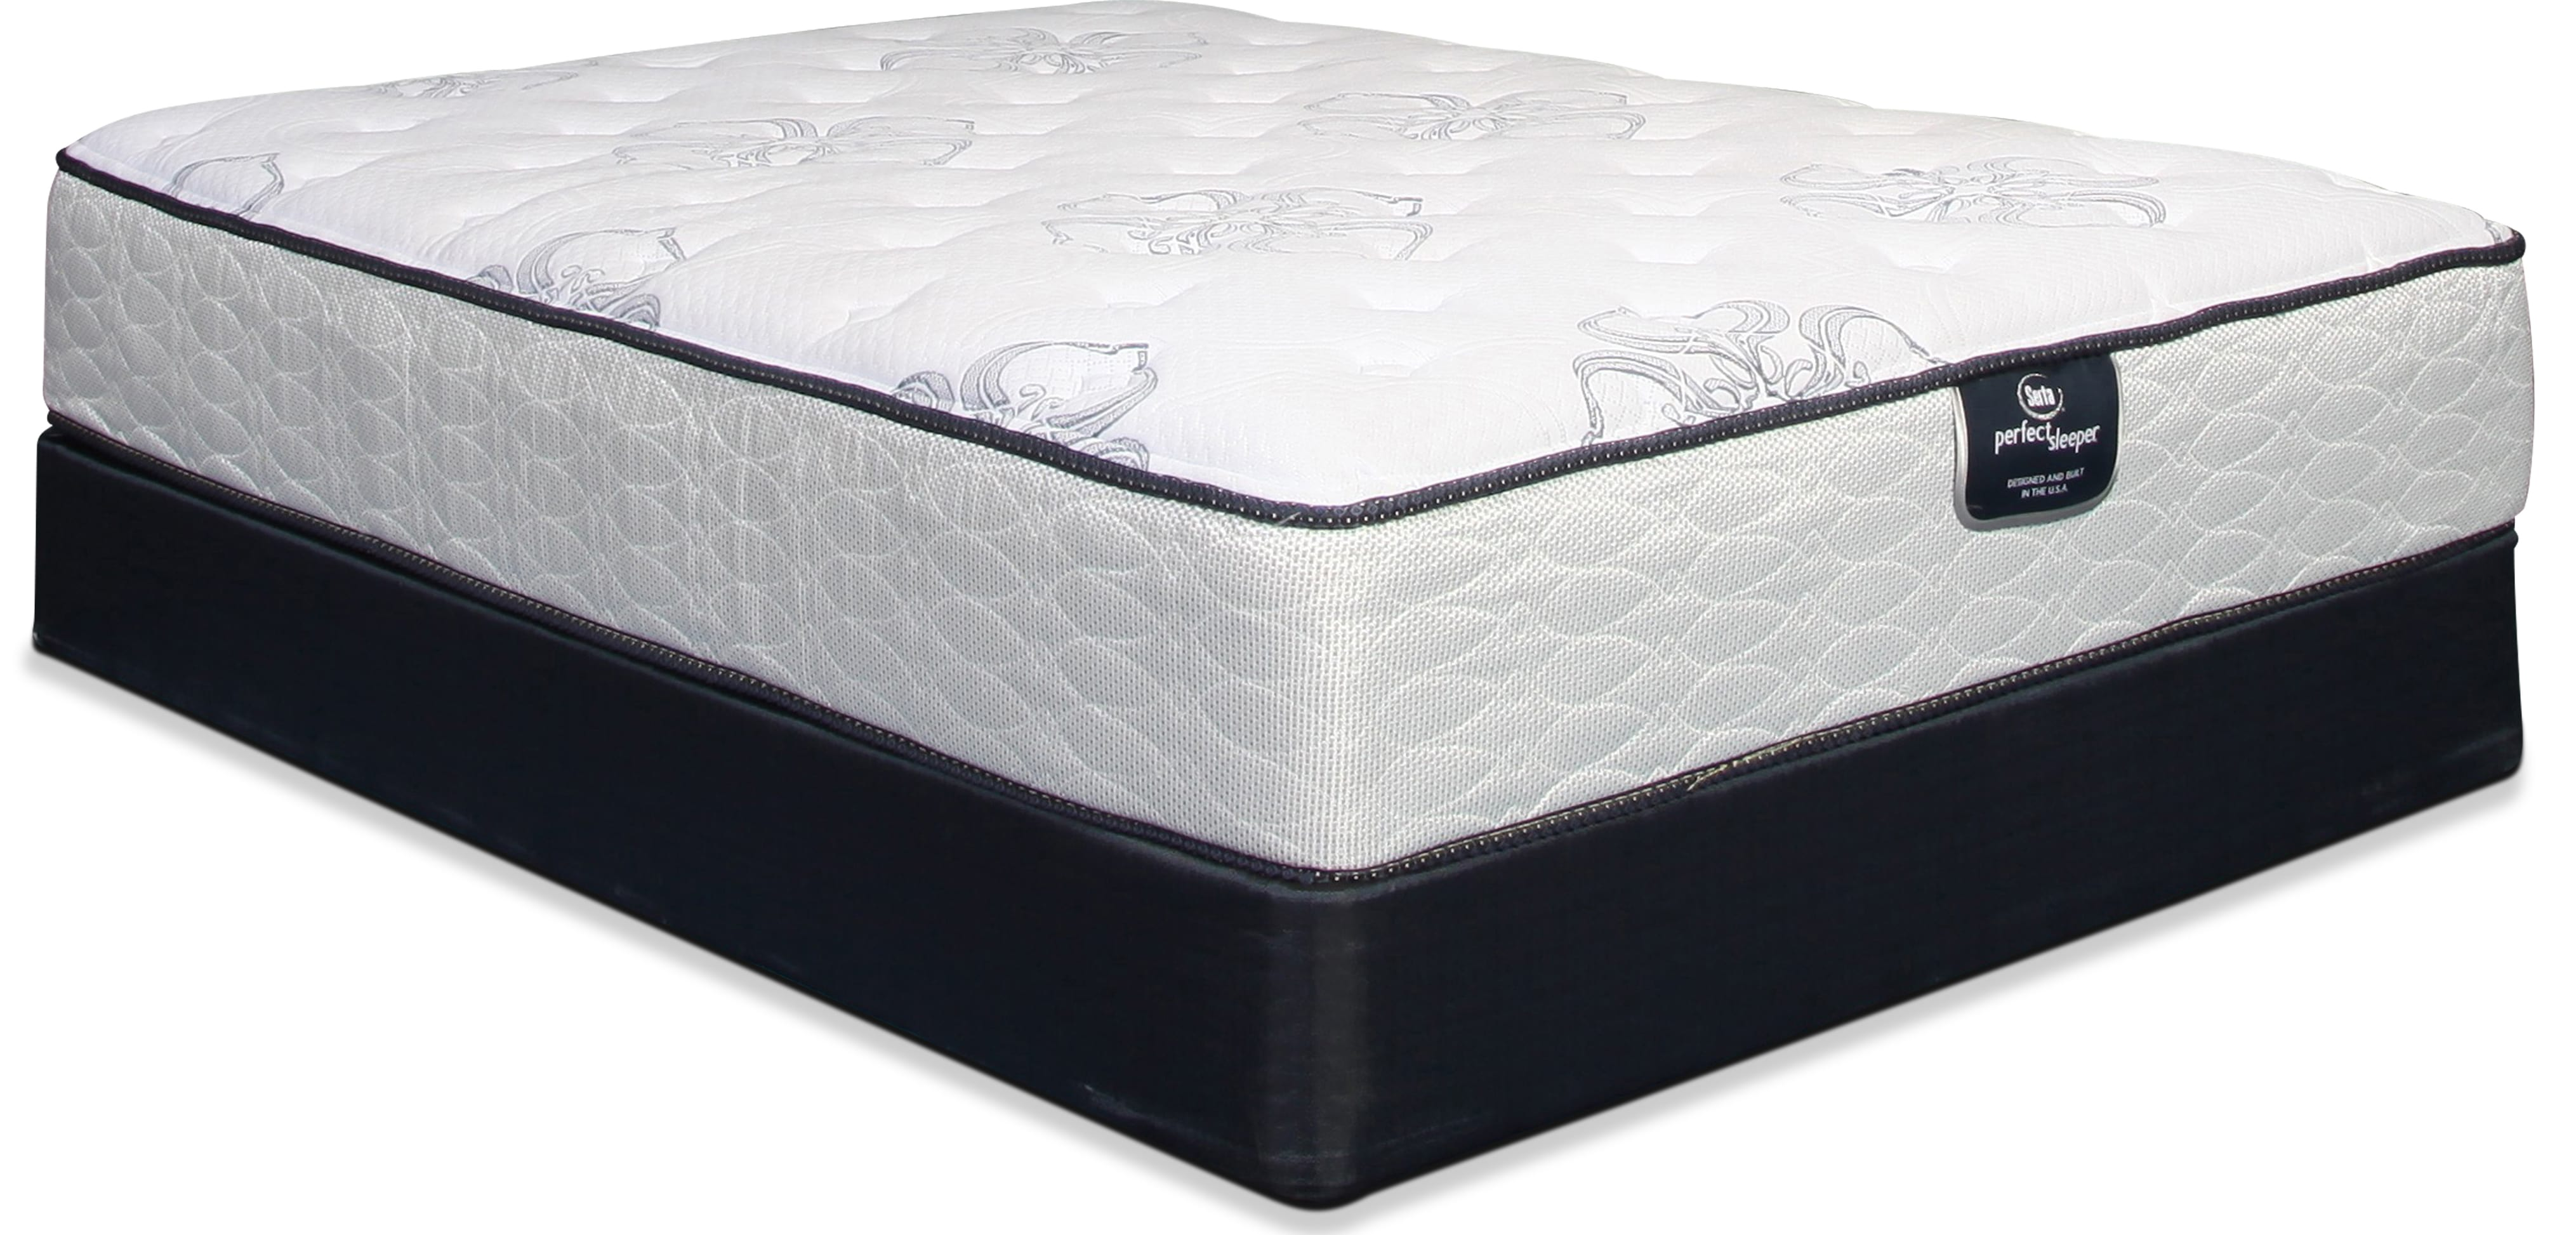 Serta Perfect Sleeper Plush California King Mattress and Split Boxsprings